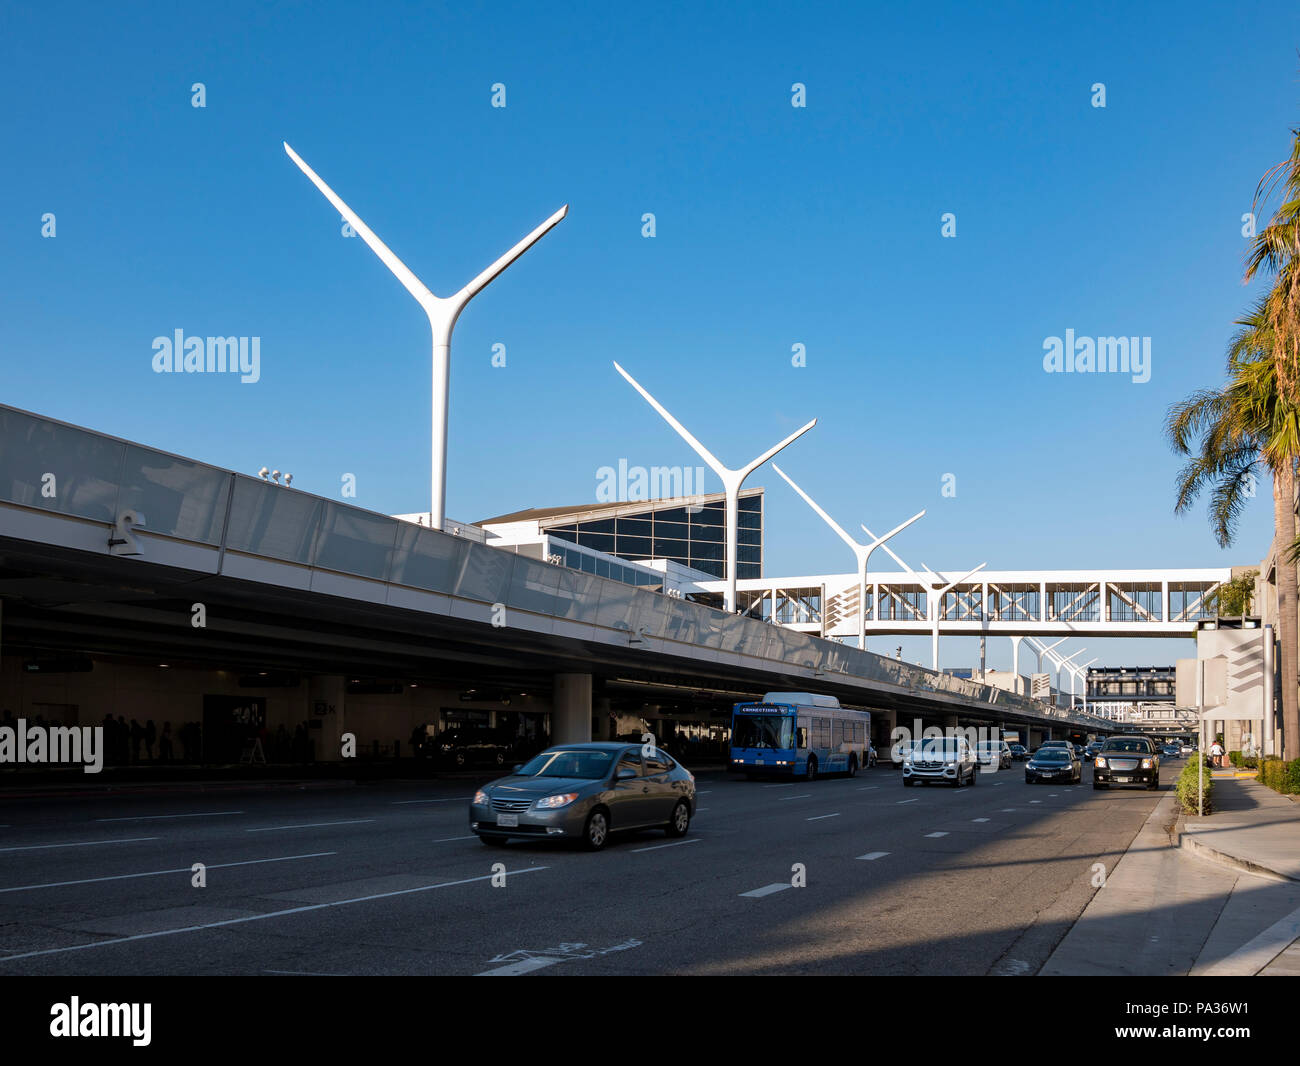 Los Angels, JUL 3: The famous LAX International Airport on JUL 3, 2018 at Los Angeles, California - Stock Image